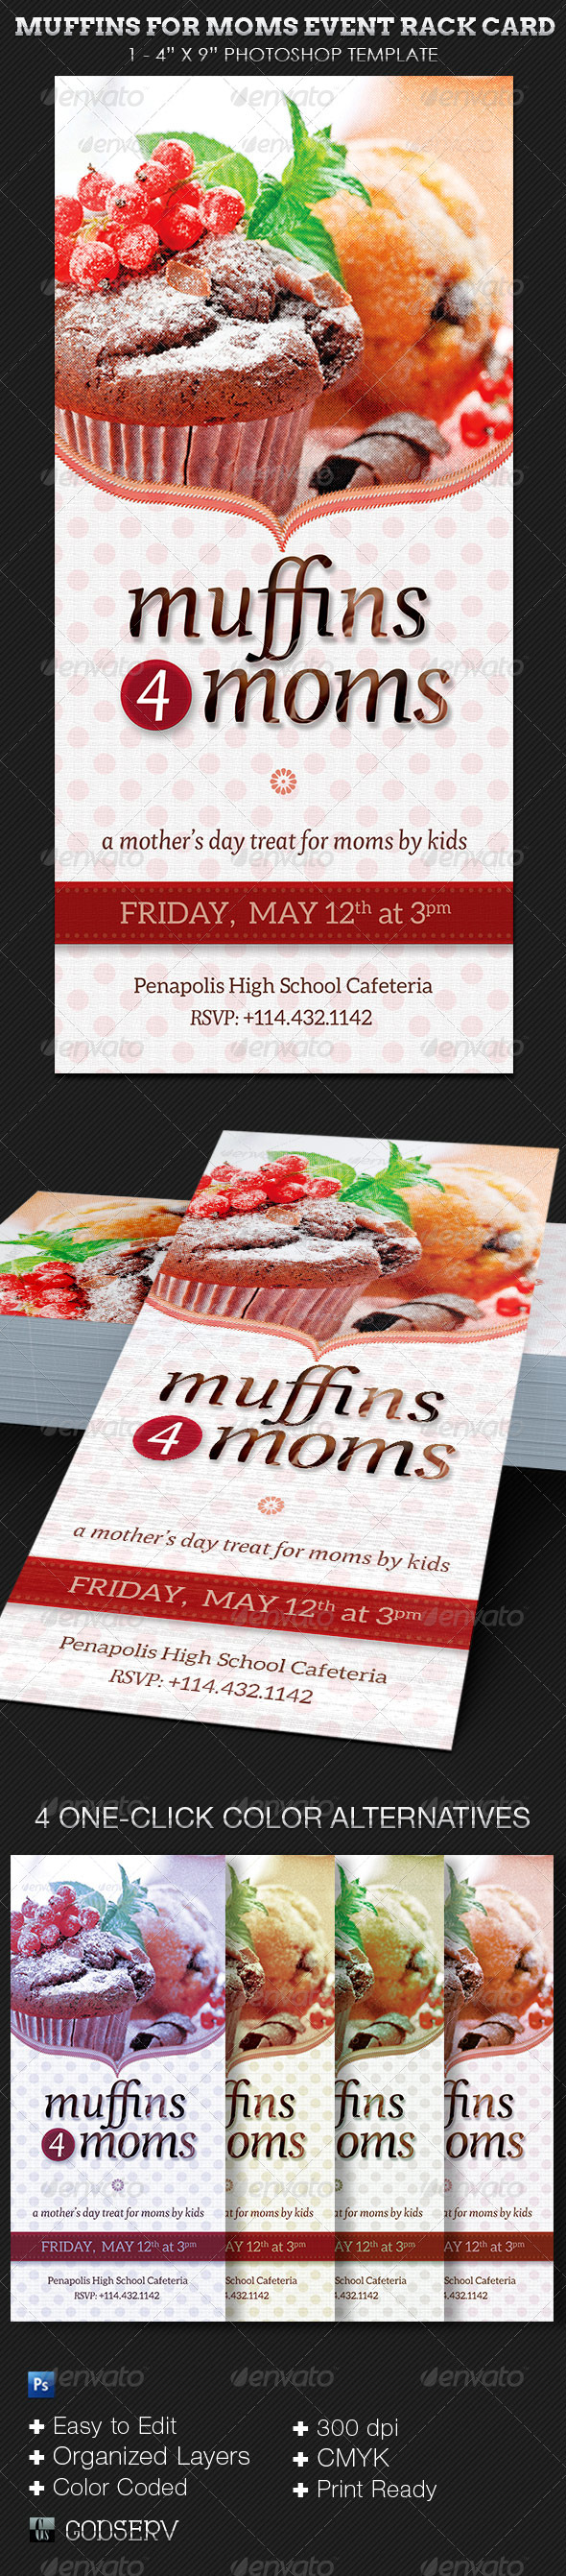 Muffins for Moms Event Rack Card Template - Events Flyers